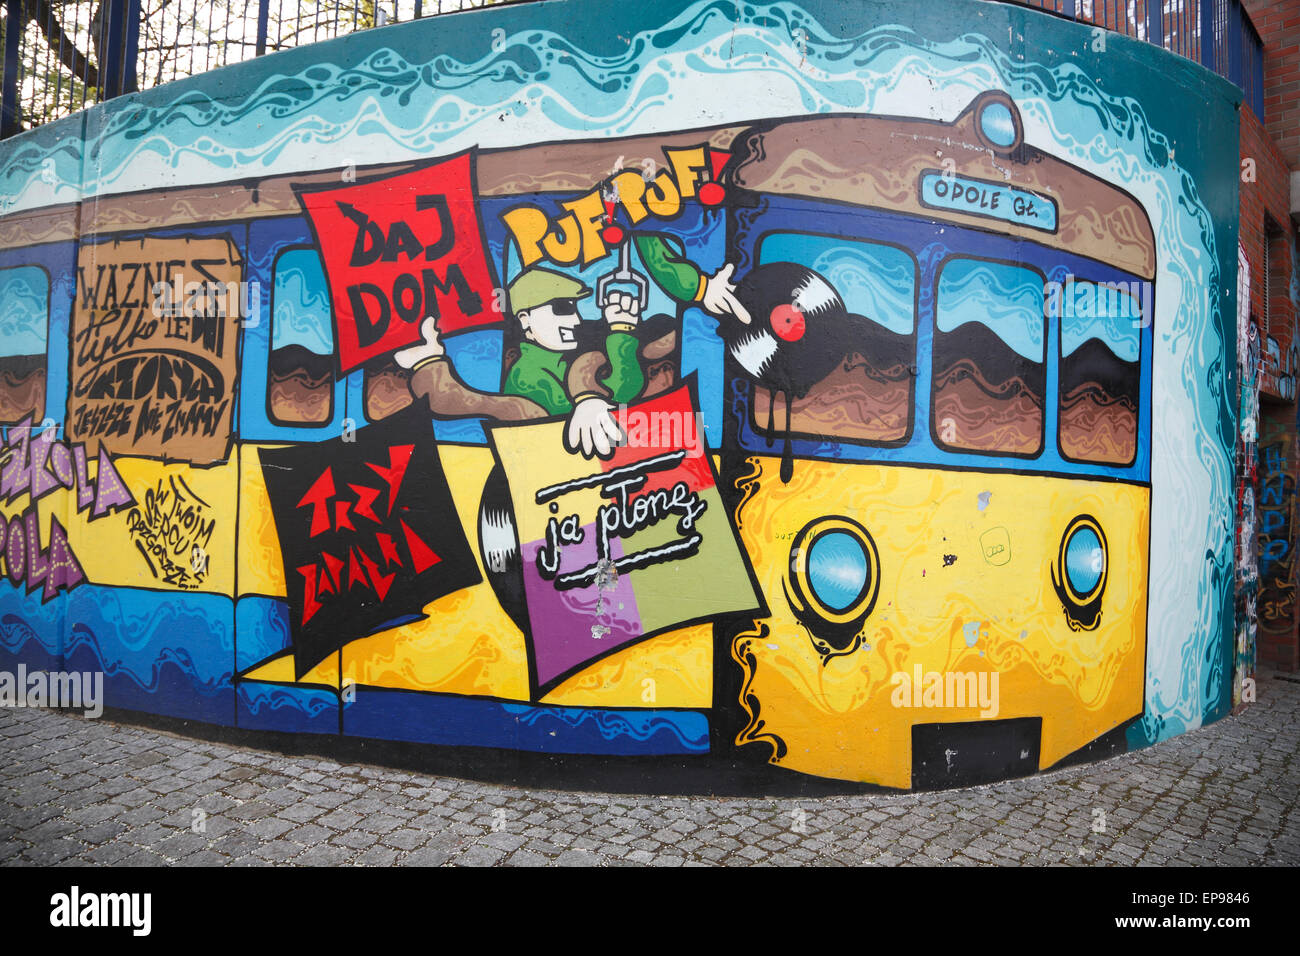 Graffiti in Opole, Silesia, Poland, Europe Stock Photo